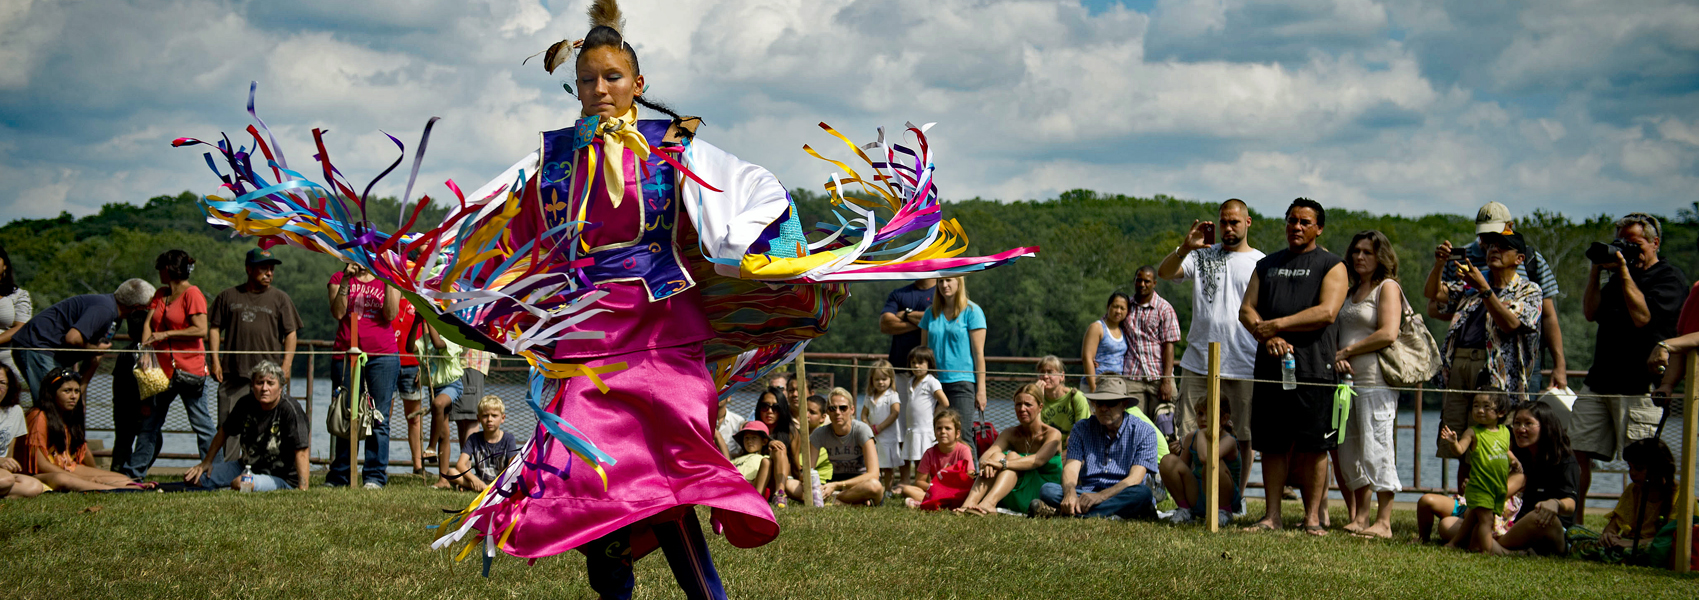 Native American in colorful costume performs a dance at Riverbend's Indian Festival